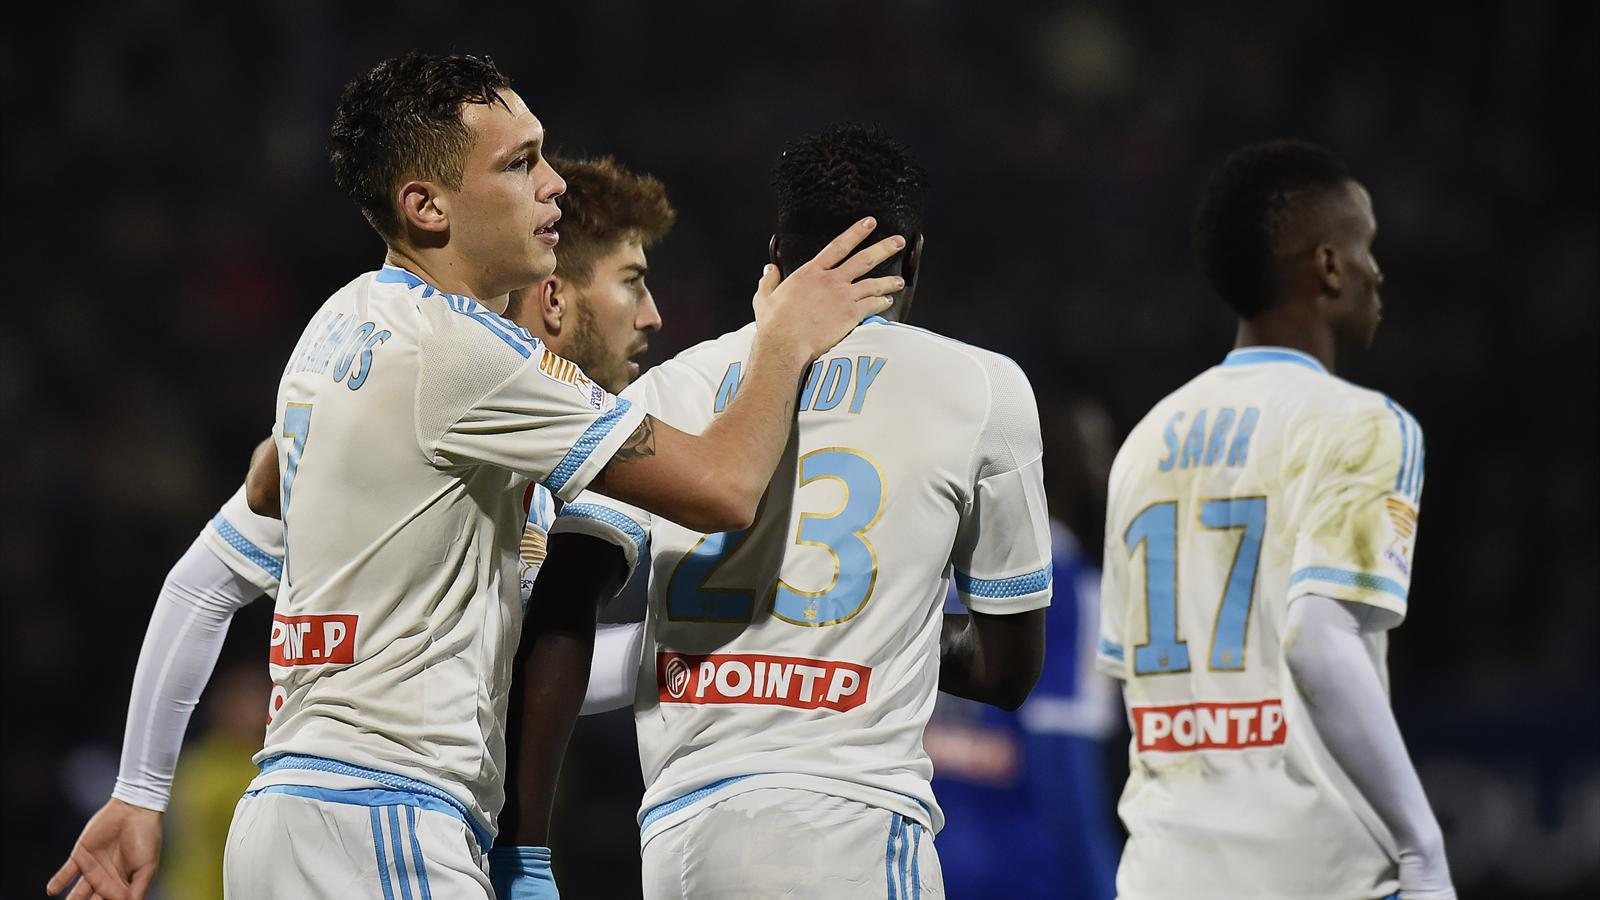 Live bourg en bresse 01 olympique de marseille 1 8 - Billets finale coupe de la ligue 2015 ...